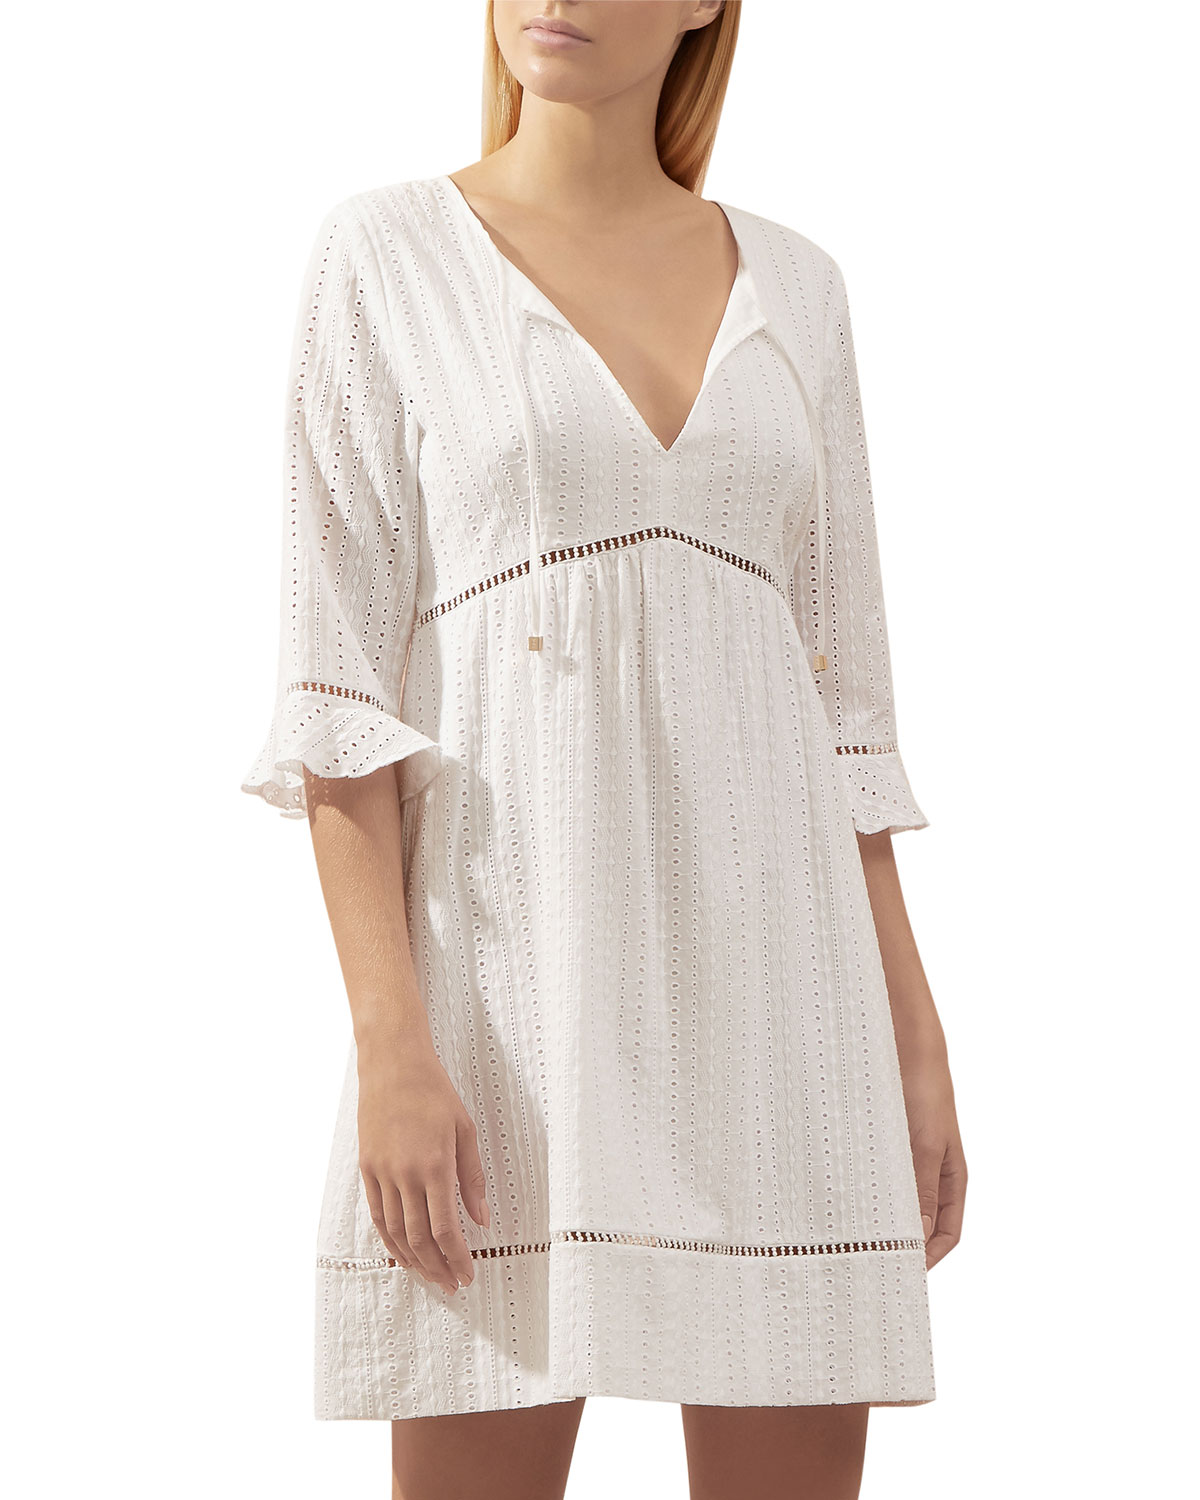 Palermo Eyelet 3/4-Sleeve Mini Kaftan in White